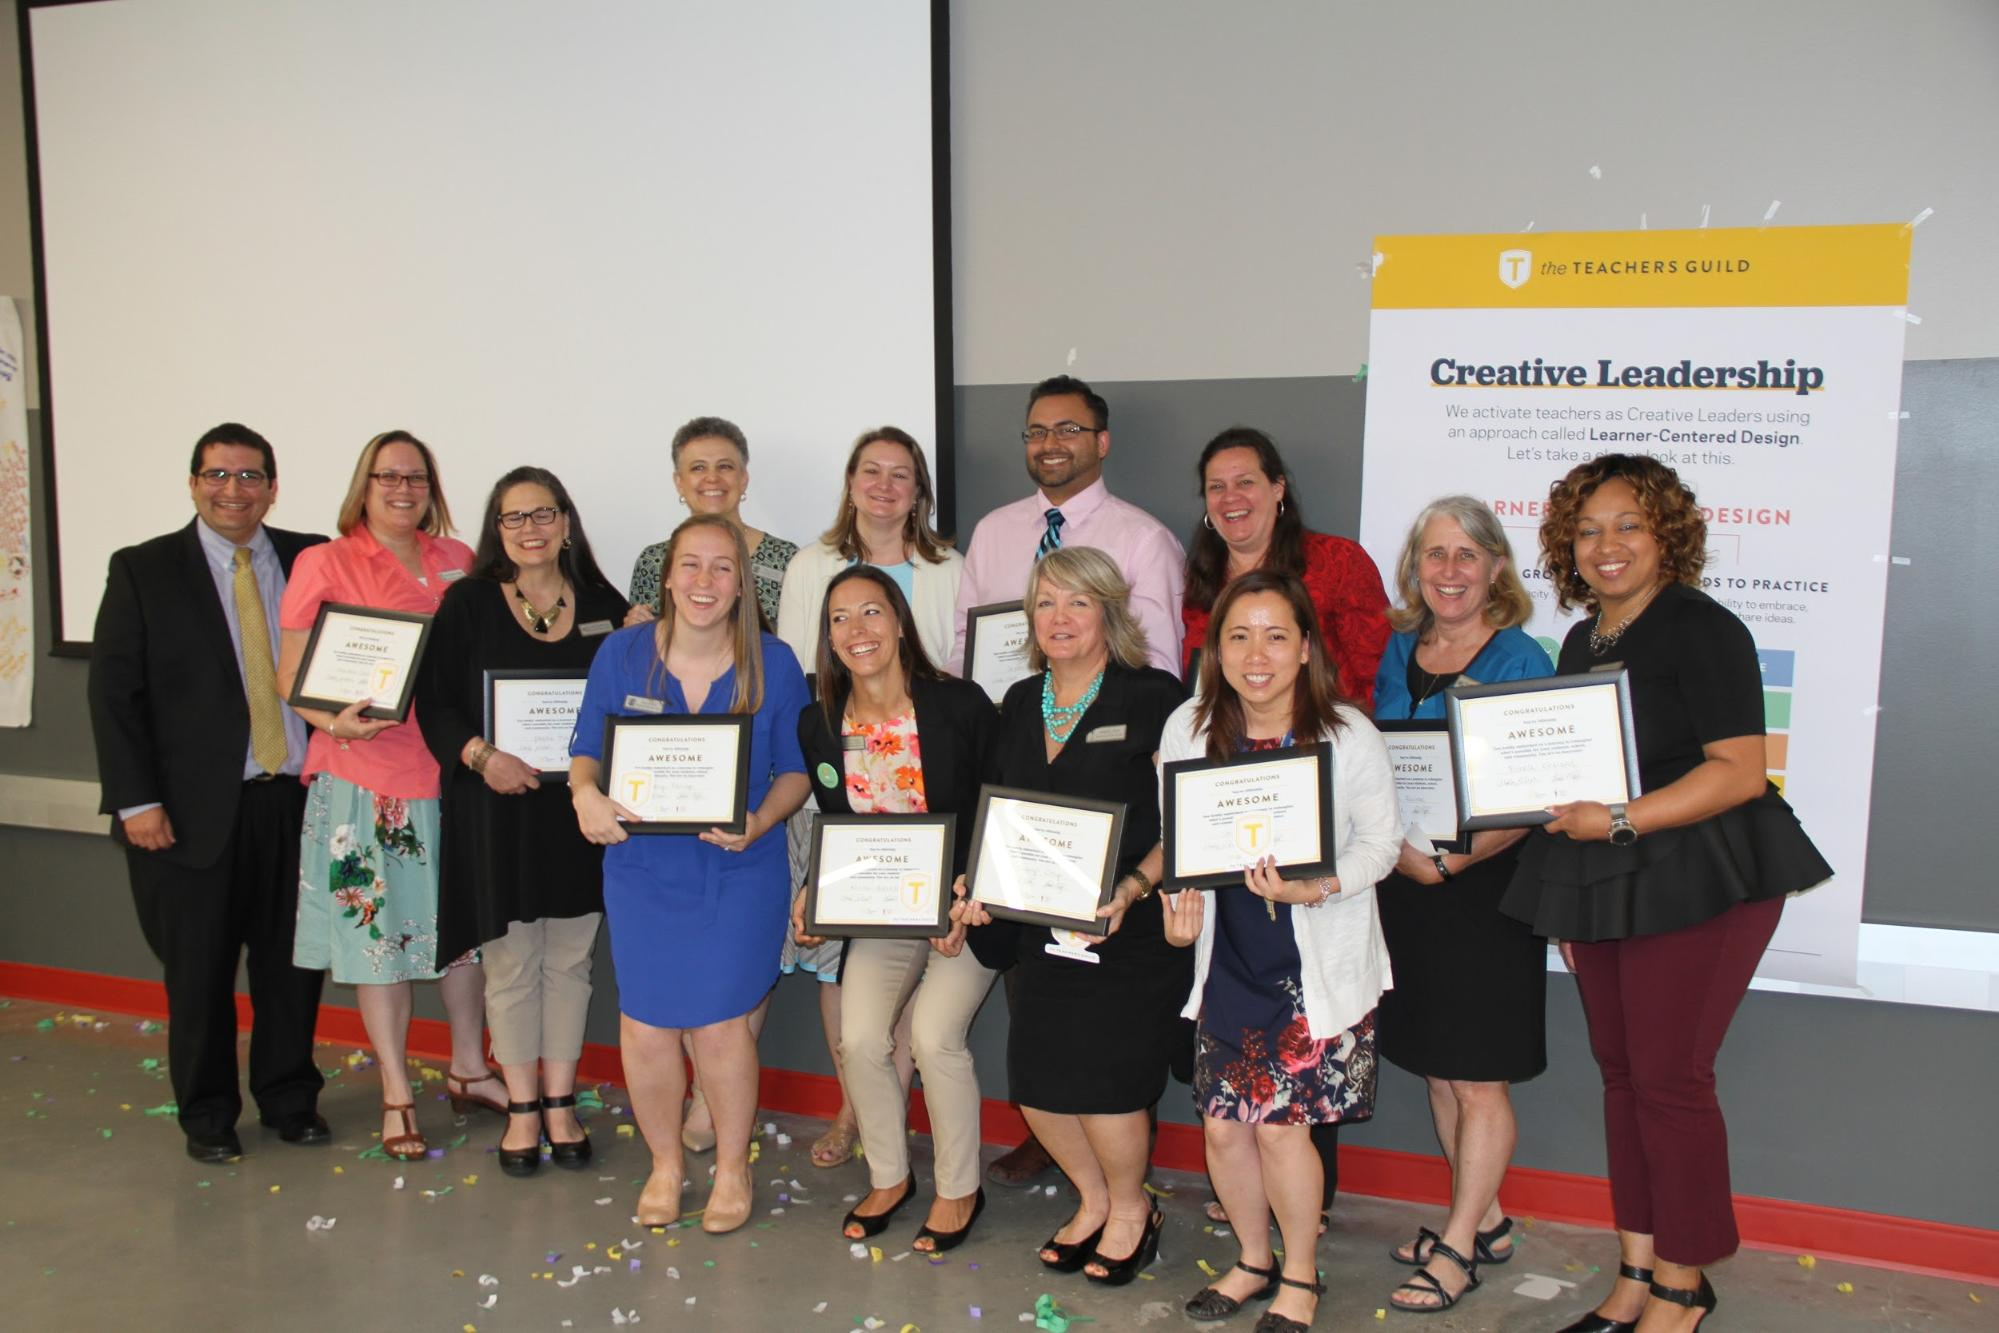 Gwinnett County Public School teachers proudly display their Certificates of Awesome after presenting ideas at their Impact Showcase.